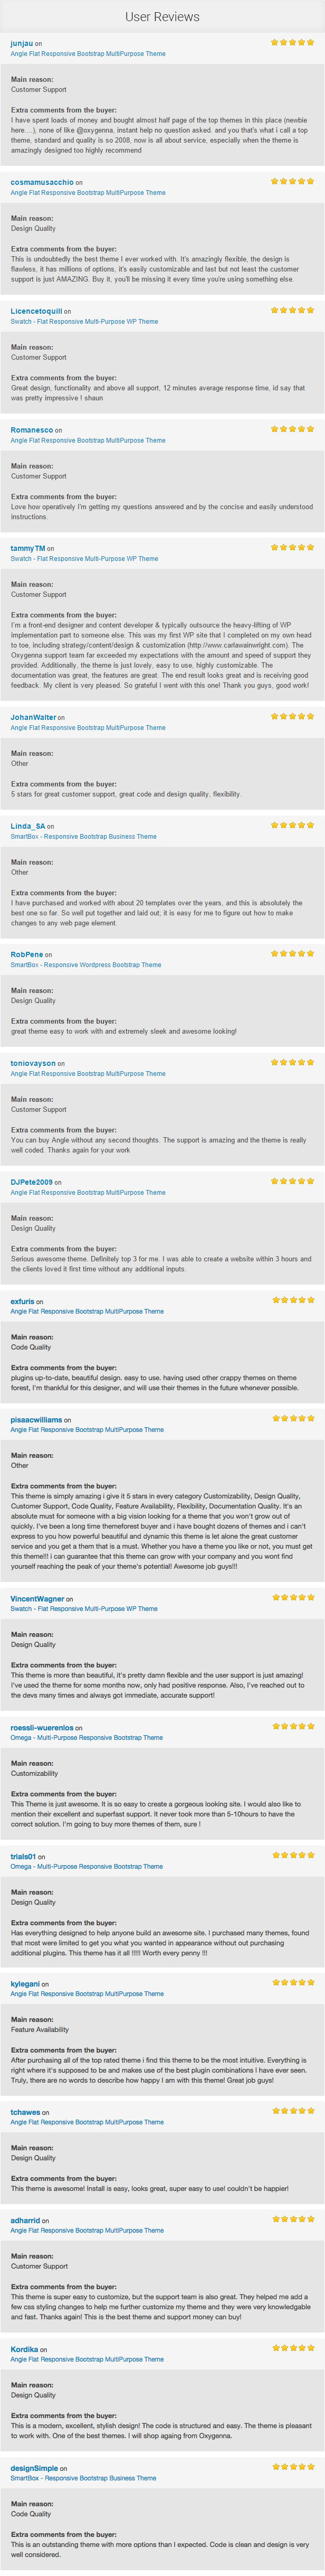 5 star support, read our user comments